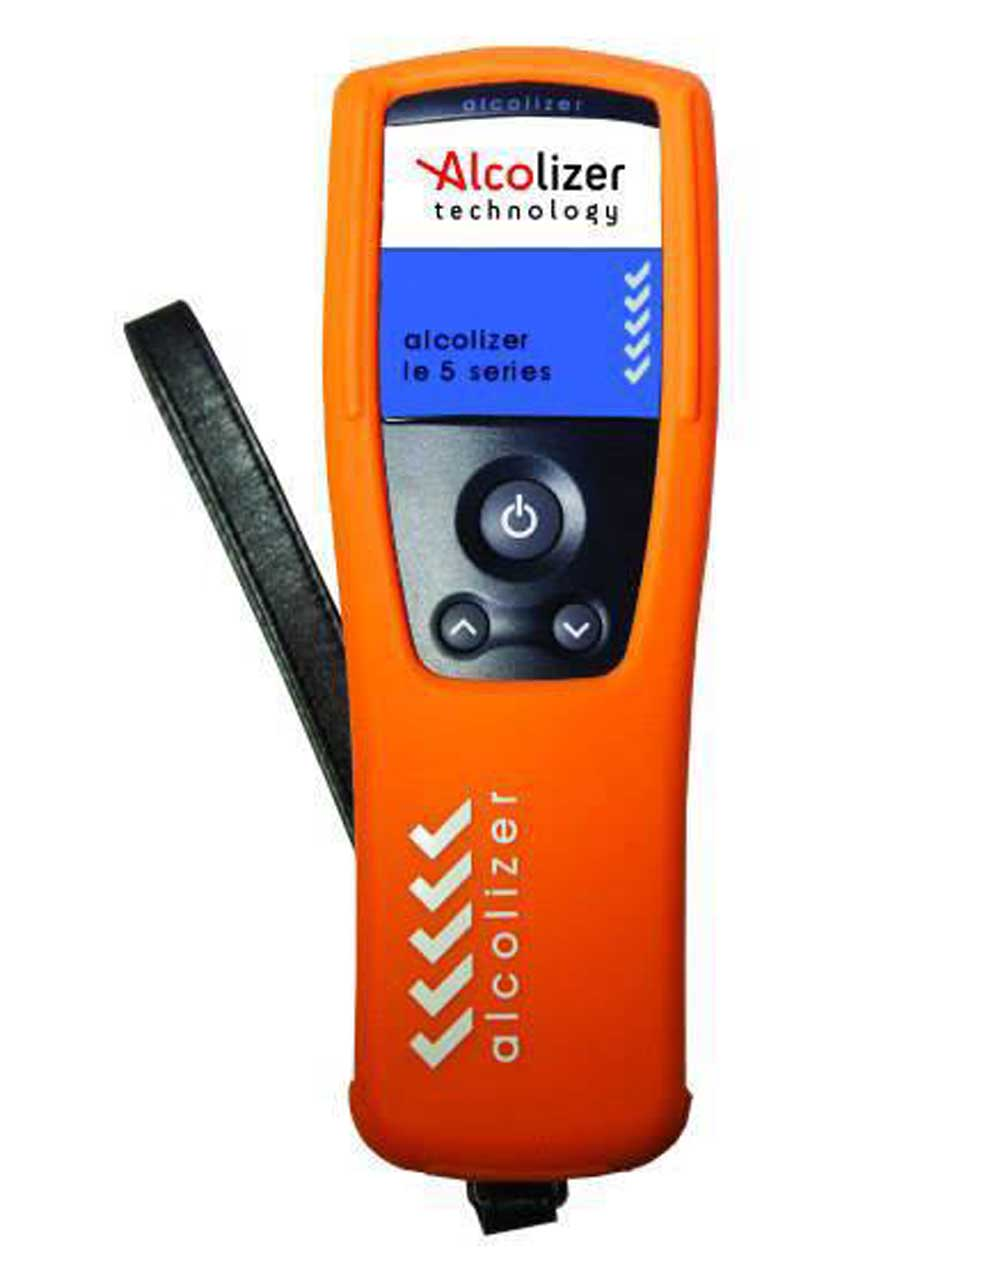 Alcolizer Series 5 Breathalyzer, advanced tester with